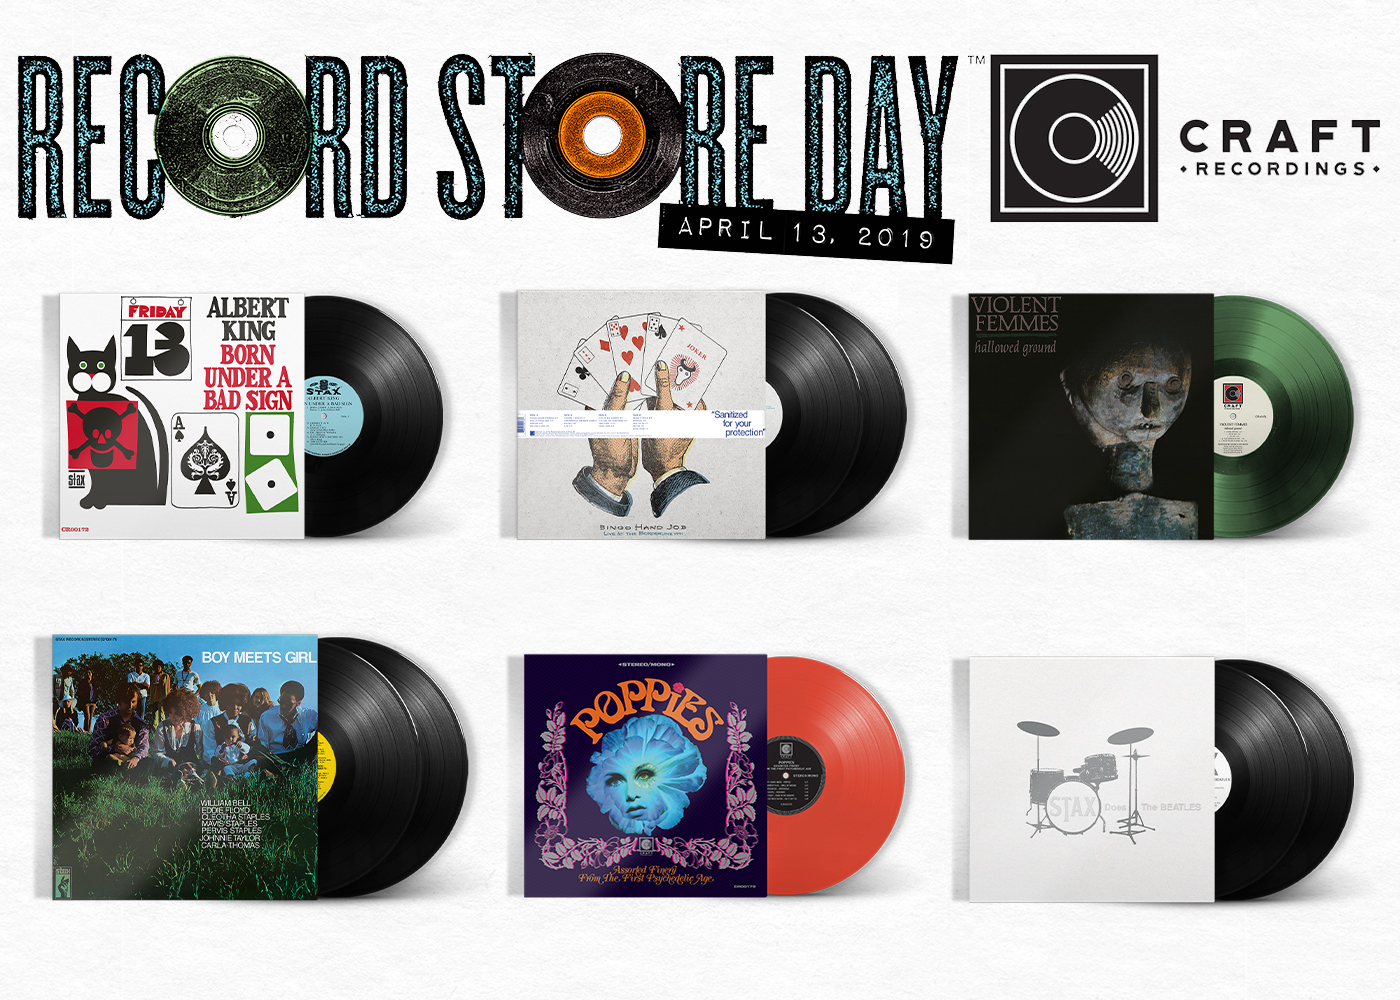 JP's Music Blog: New Record Store Day Releases Arriving From Craft